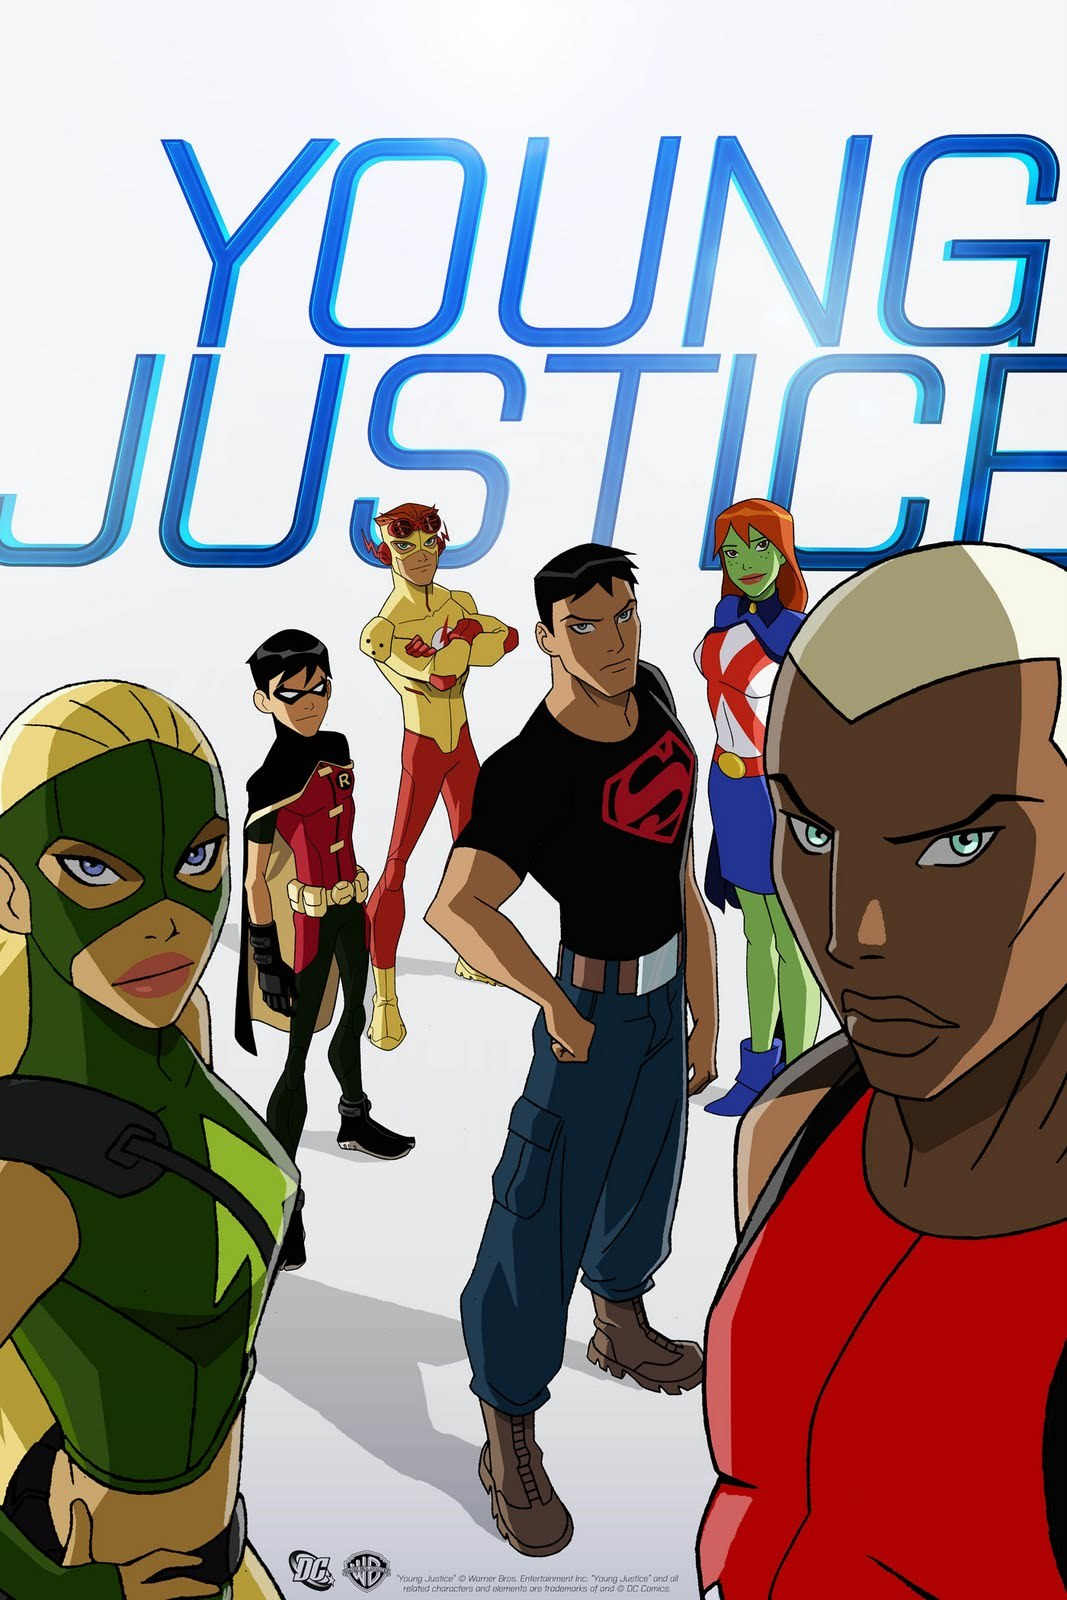 CARTOON NETWORK has cancelled YOUNG JUSTICE and GREEN LANTERN The Animated Series. Bummer.http://www.newsarama.com/tv/young-justice-green-lantern-canceled.html